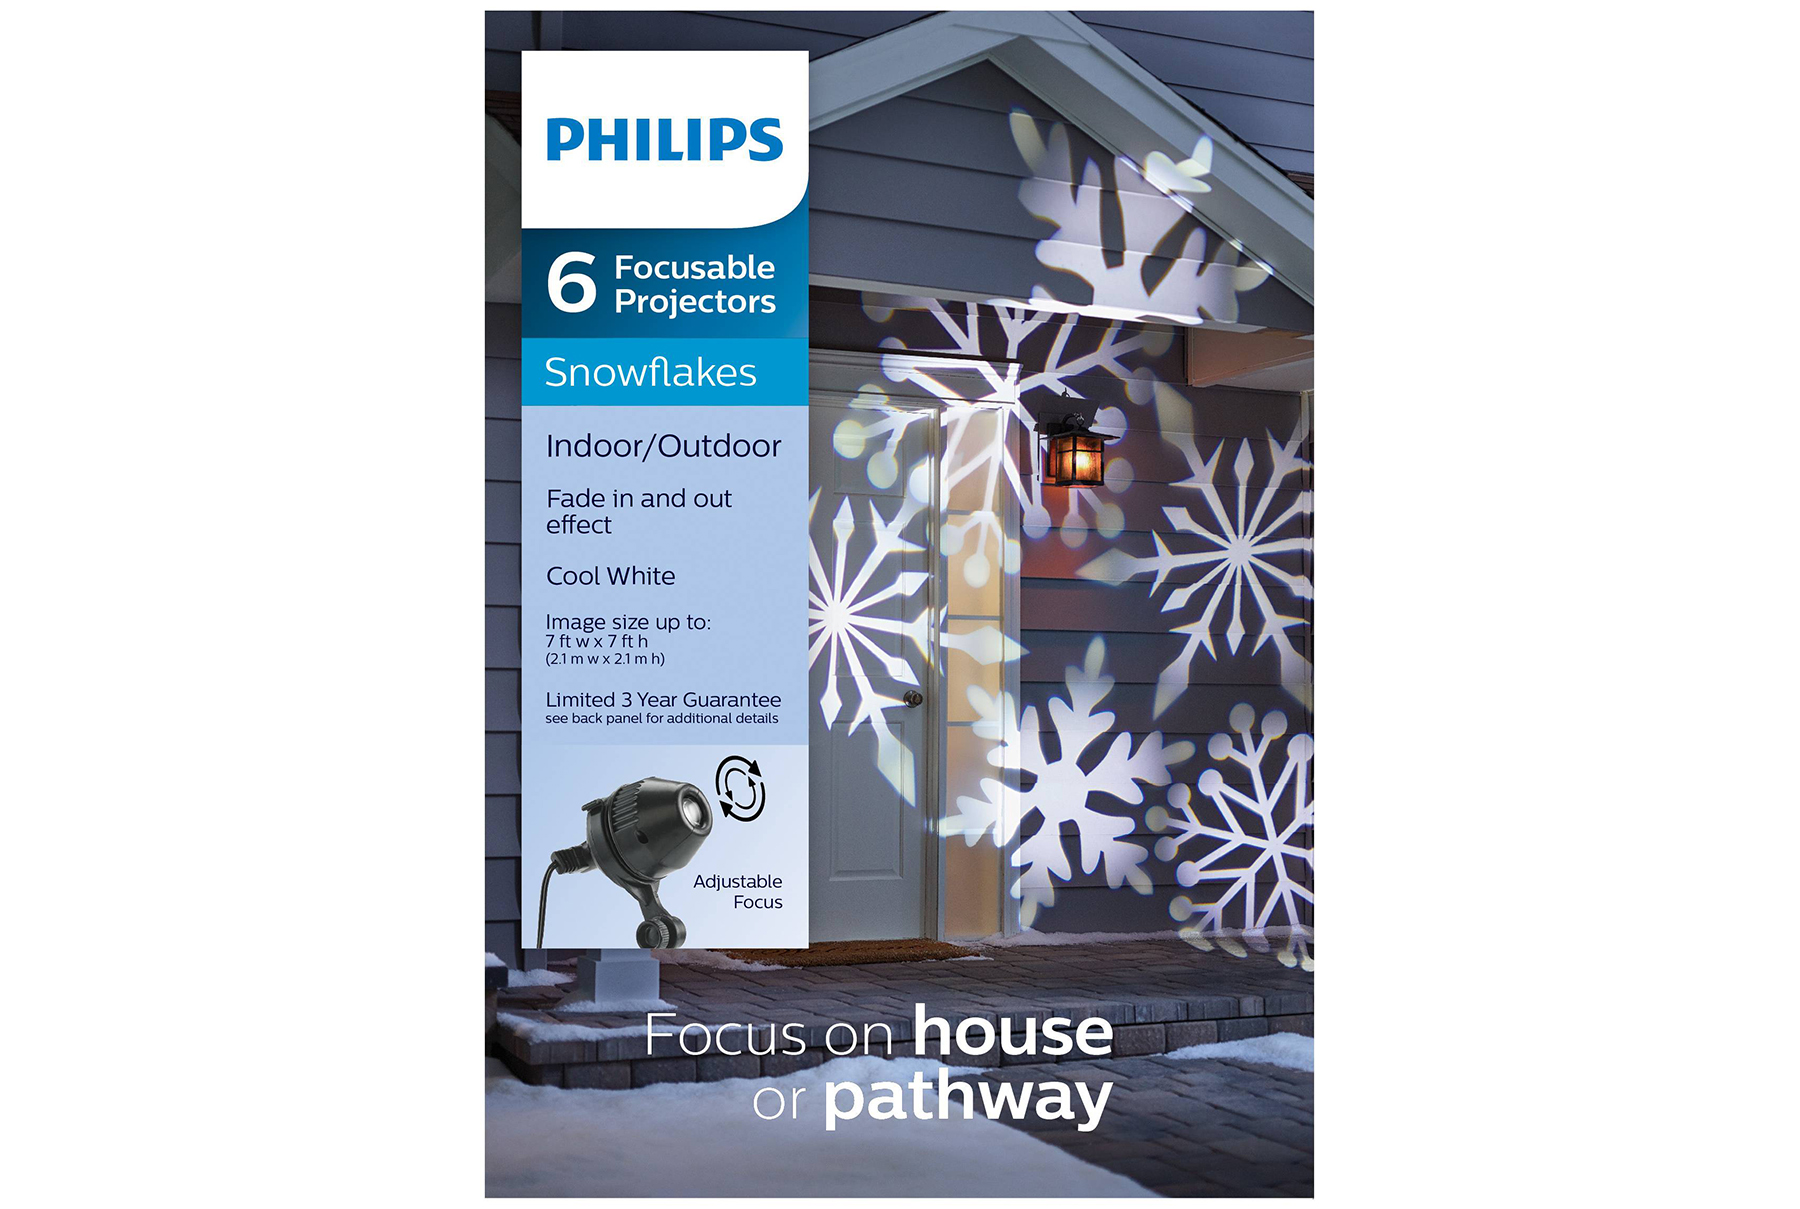 Philips Christmas LED Cool White Snowflake Projector